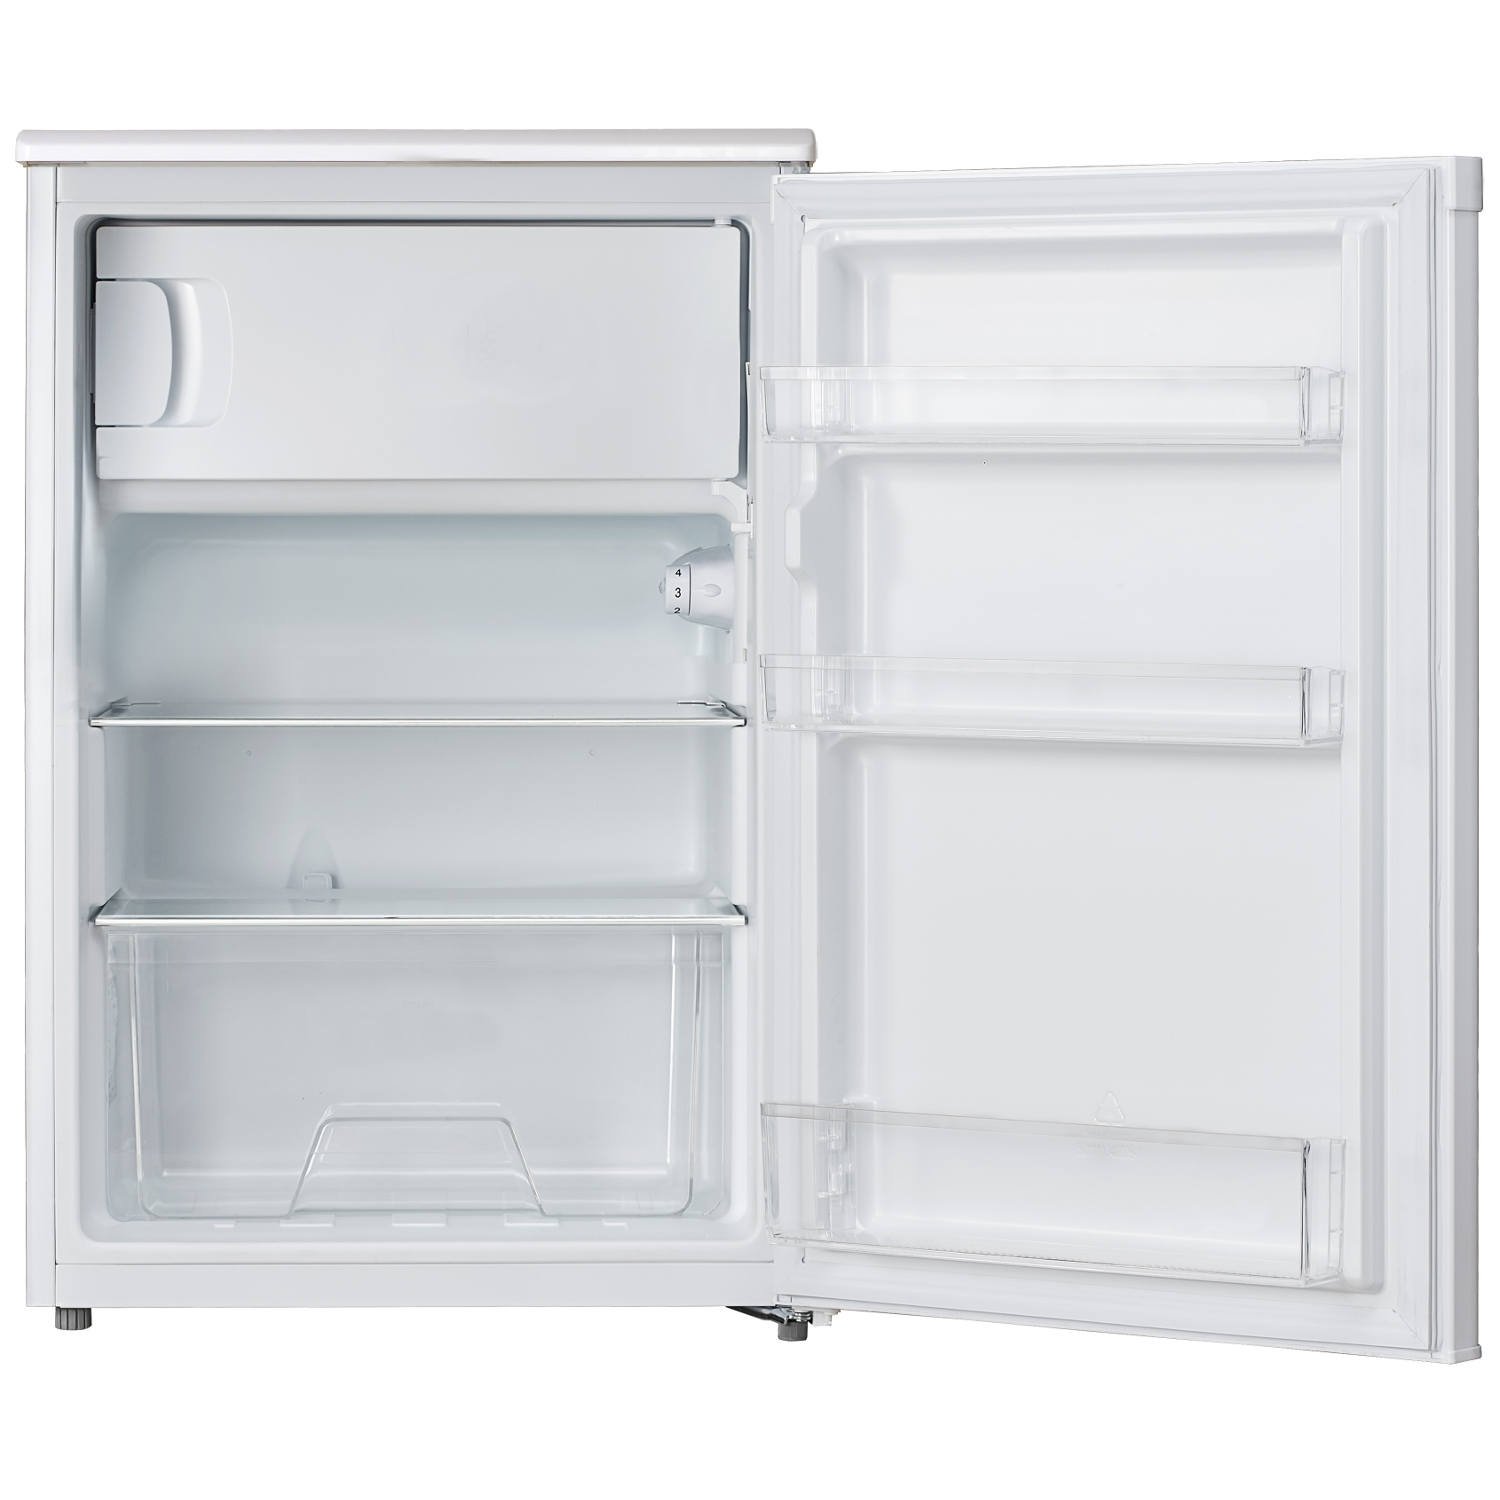 Lec 55cm Undercounter Fridge - White - 1